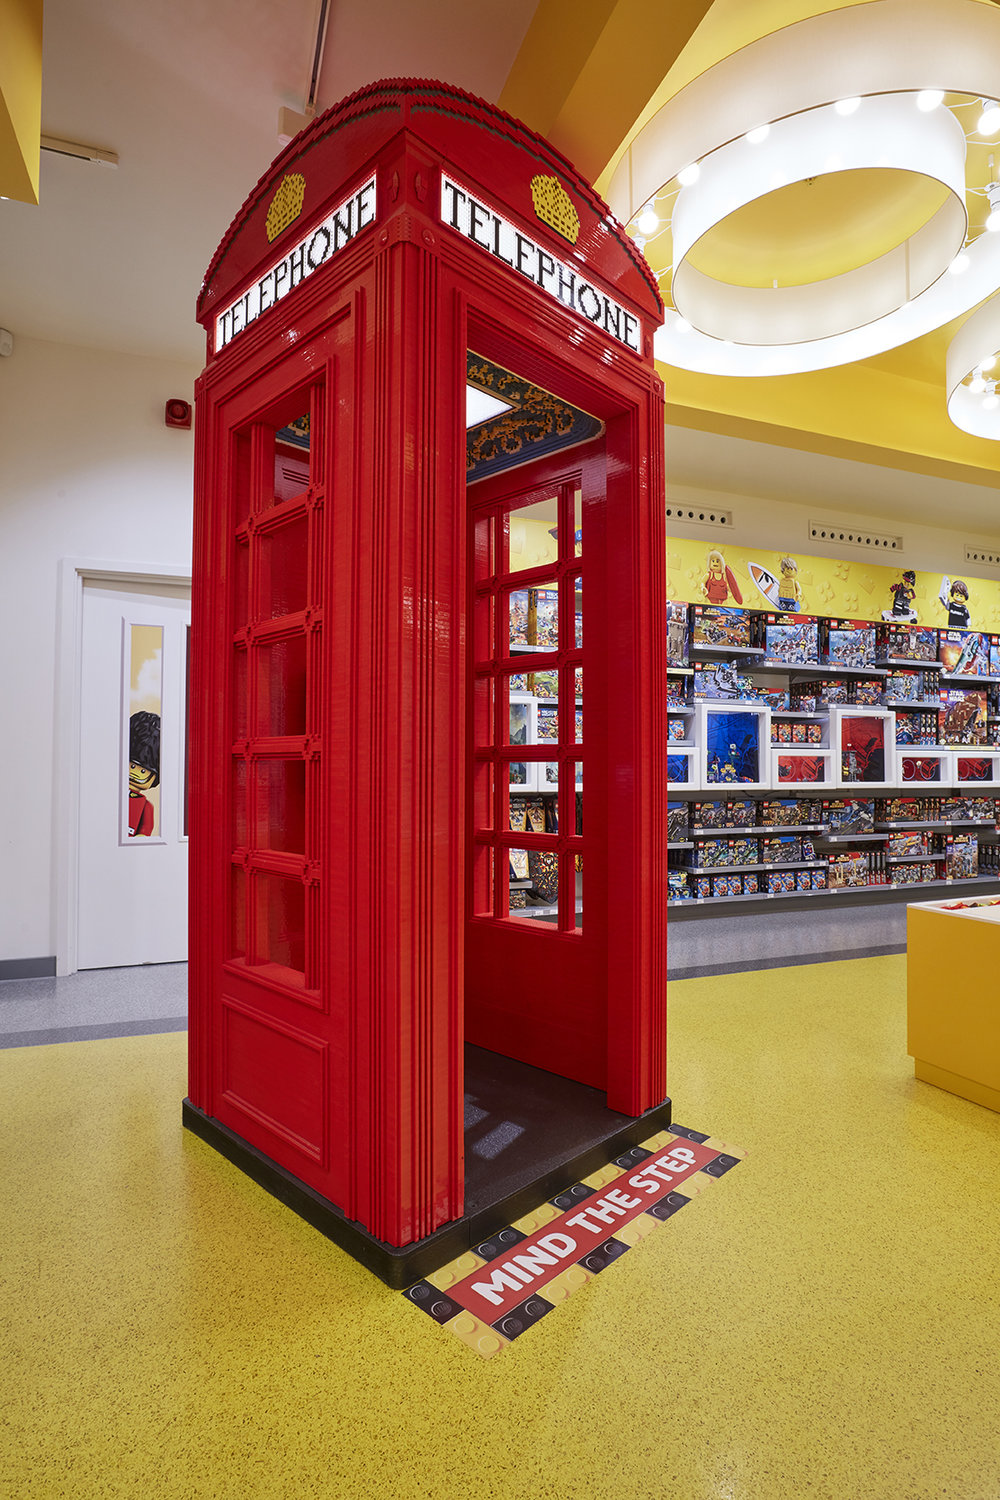 LEGO telephone box with vinyl on the floor